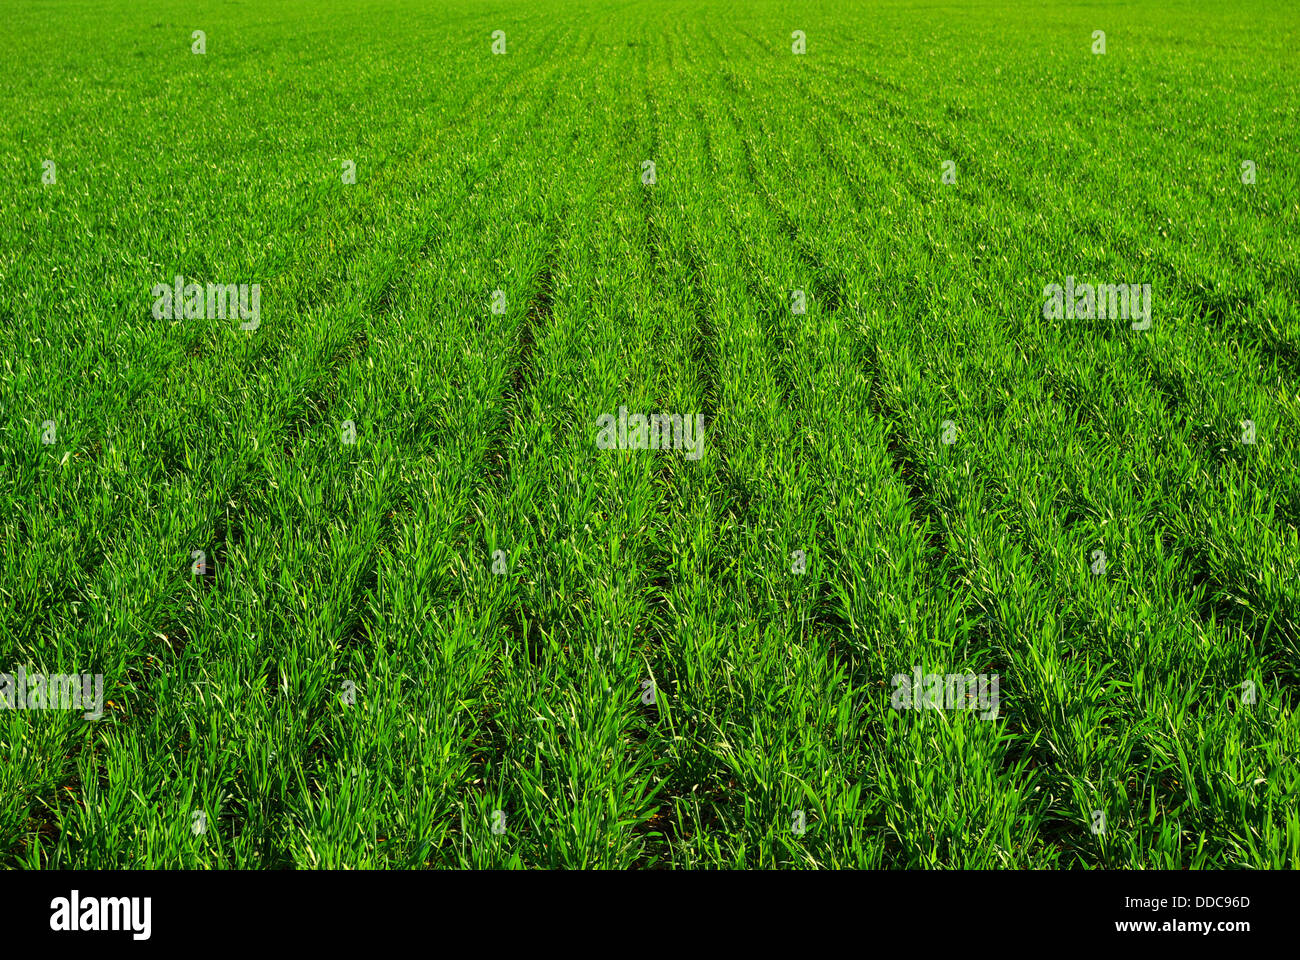 Fonds d'herbe Photo Stock